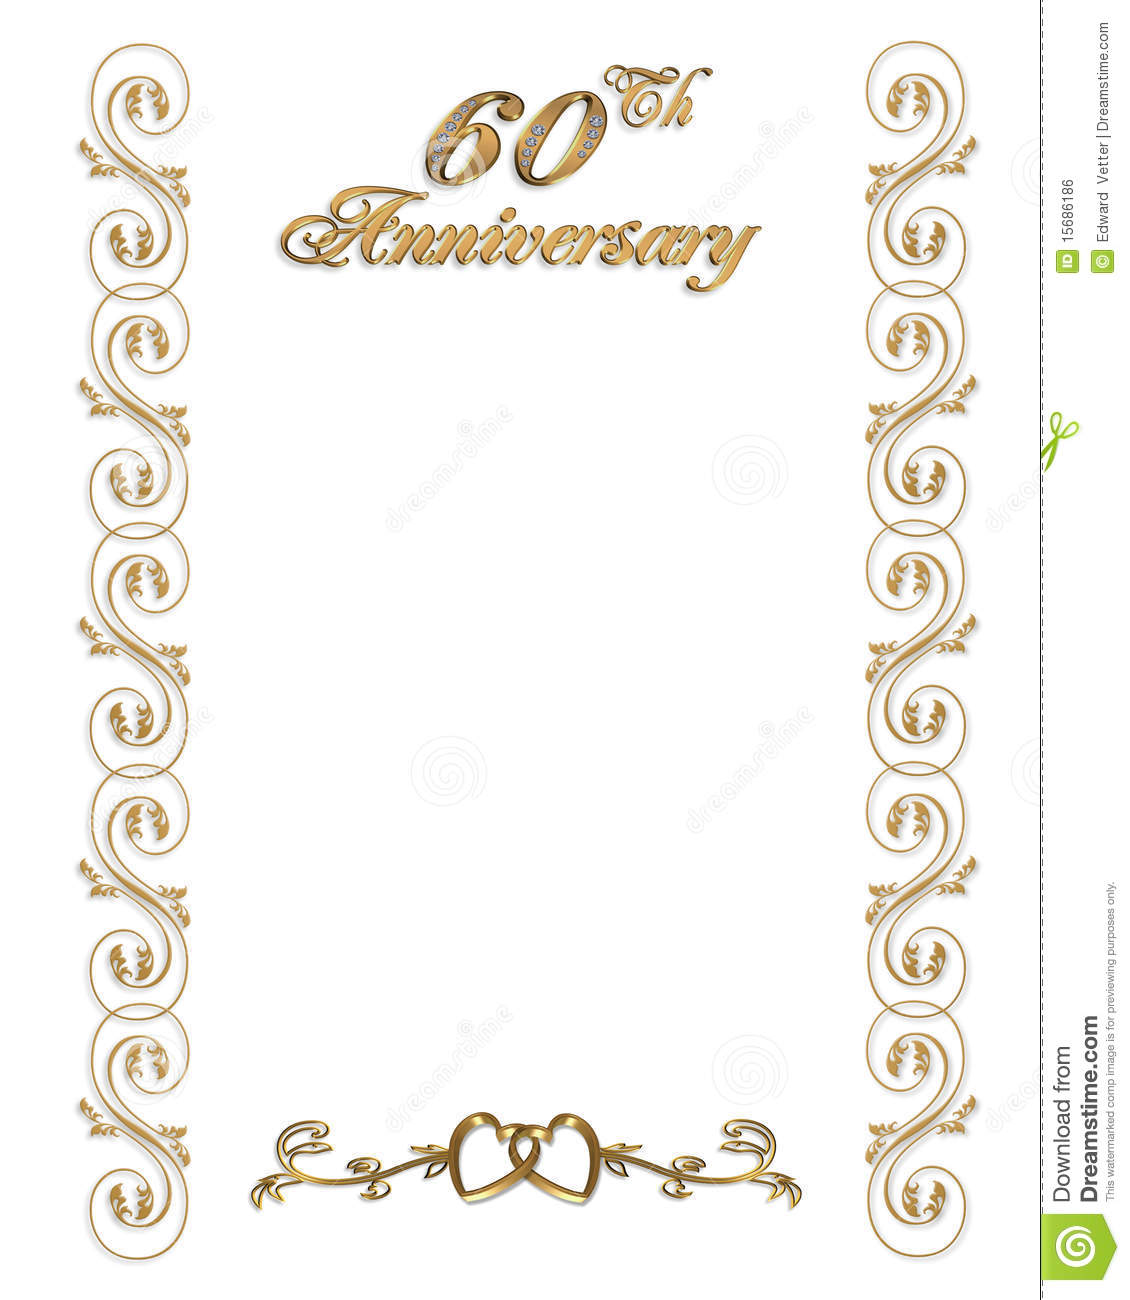 60th anniversary invitation border stock illustration illustration 60th anniversary invitation border stopboris Gallery